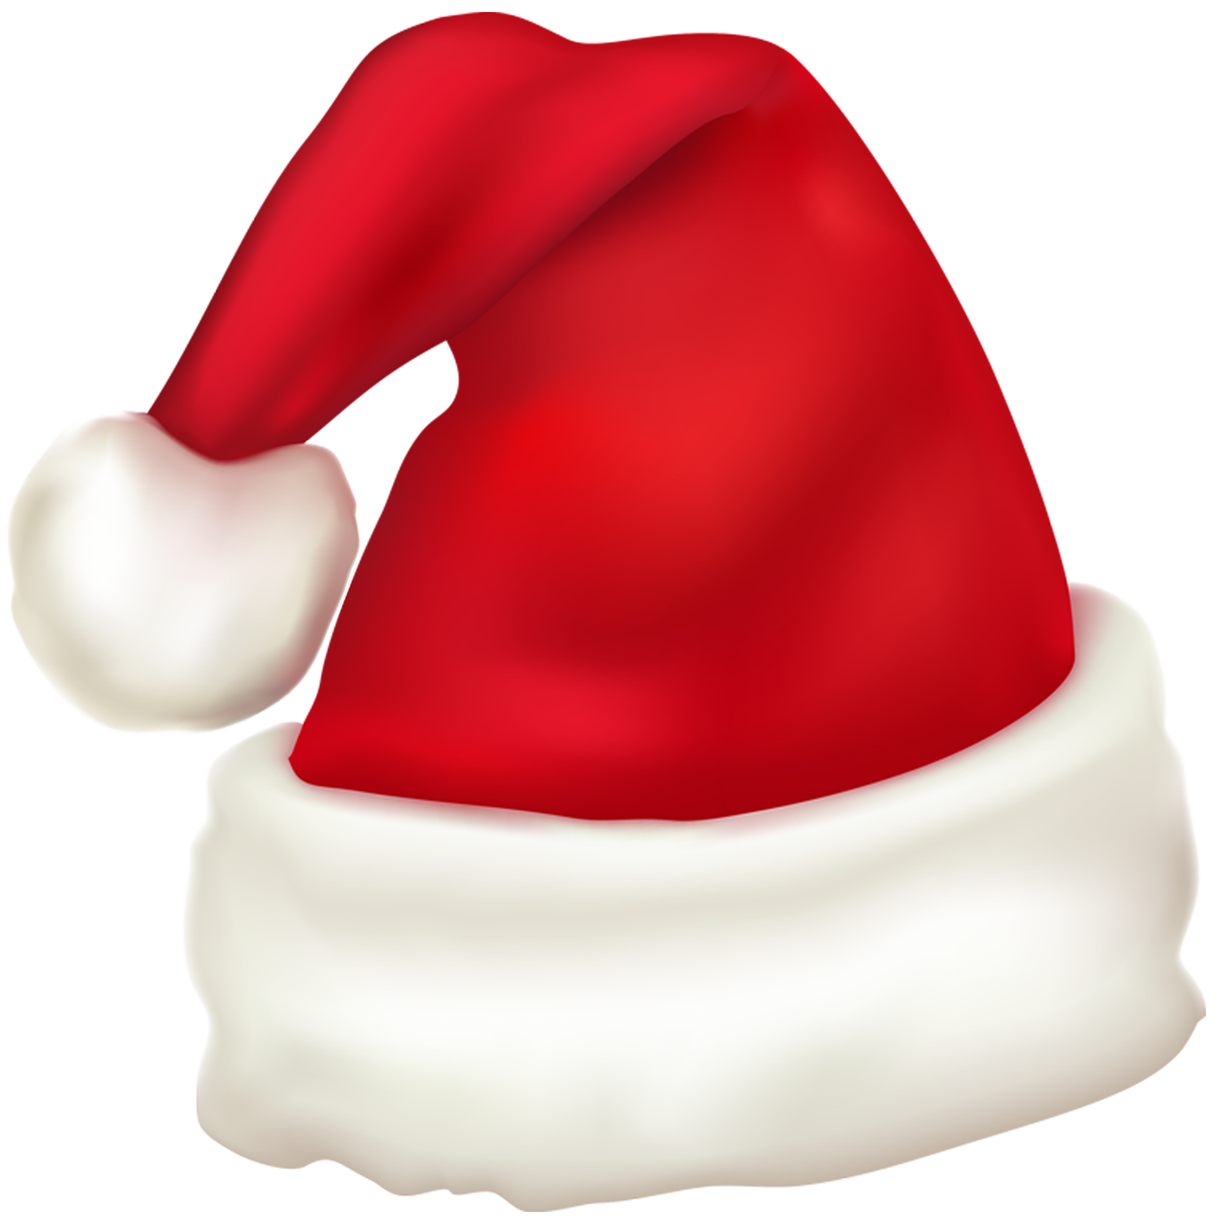 santa hat clipart with transparent background - photo #27